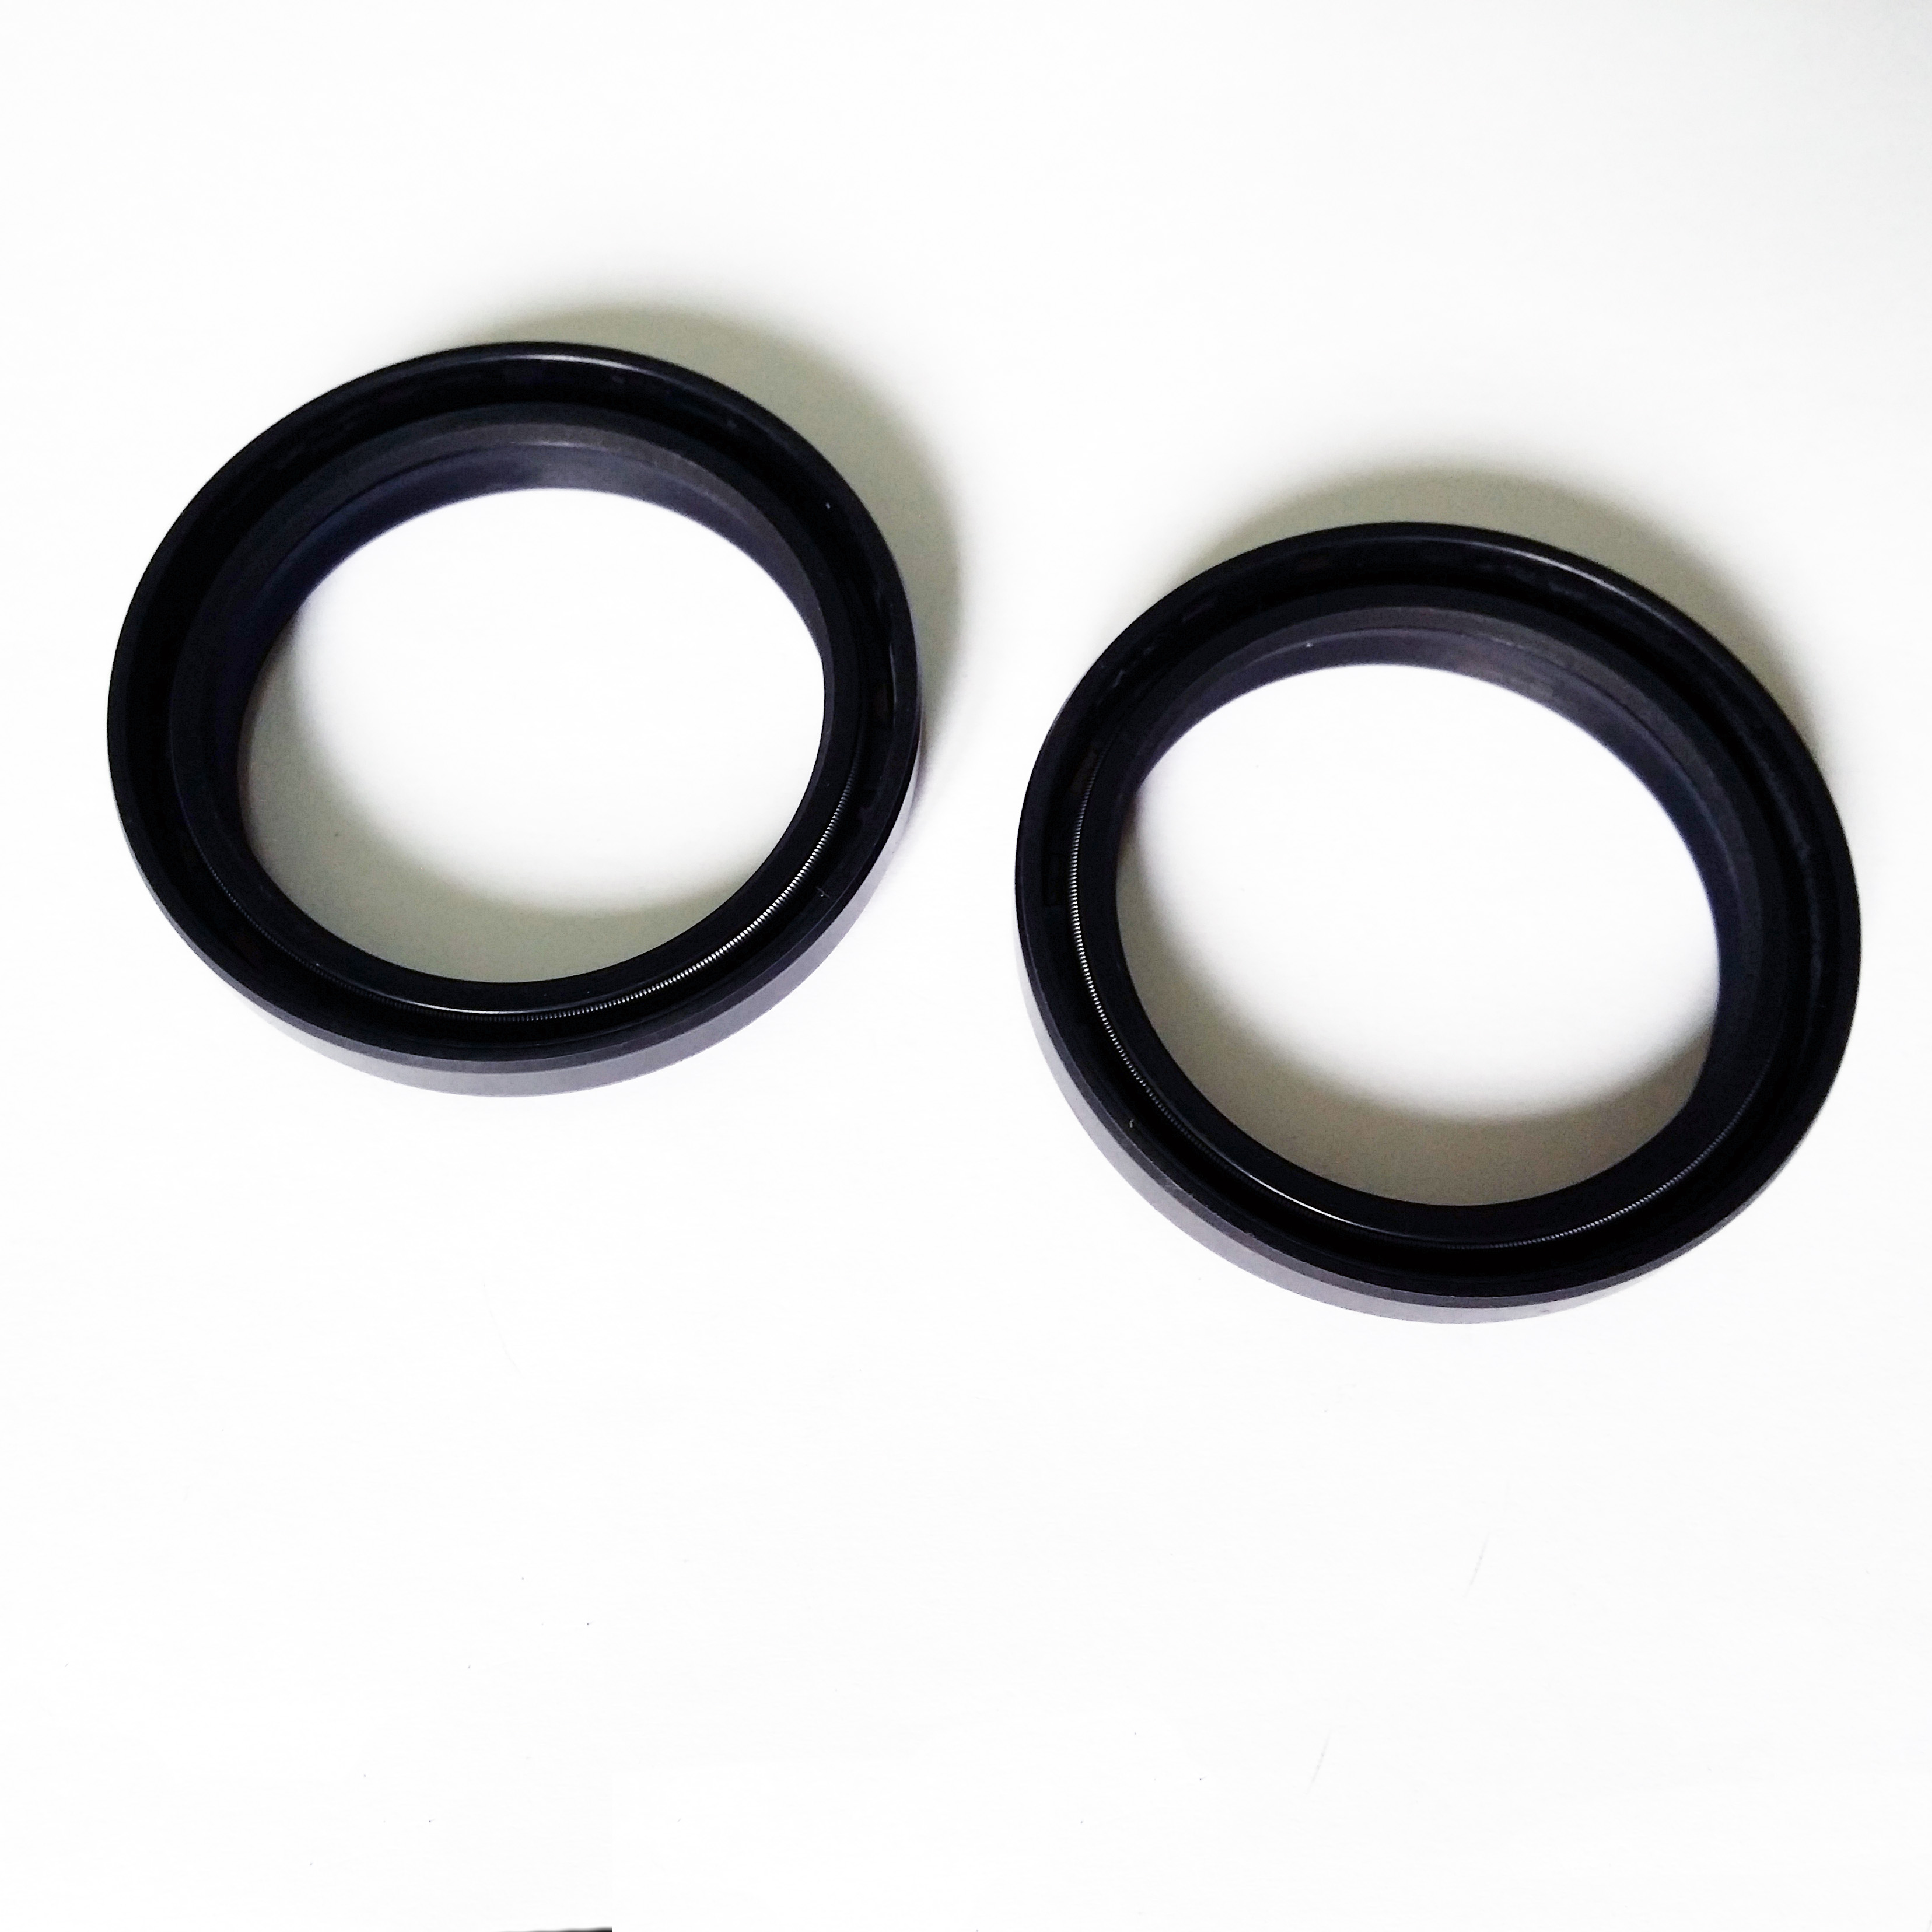 K-Tech Honda VFR800FI 1998-2001 NOK Front Fork Oil Seals 43x54x11mm